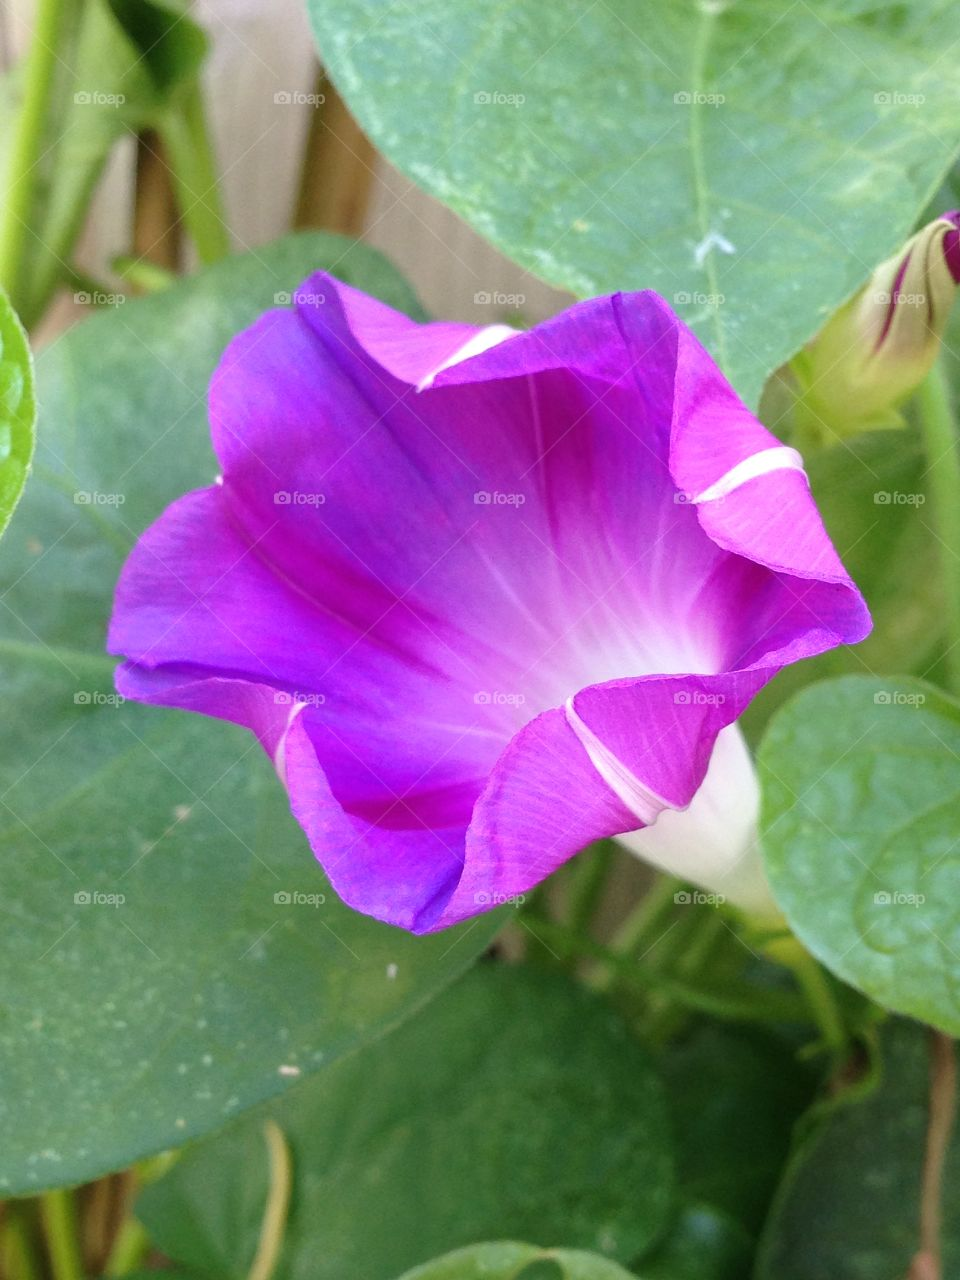 High angle view of purple flower